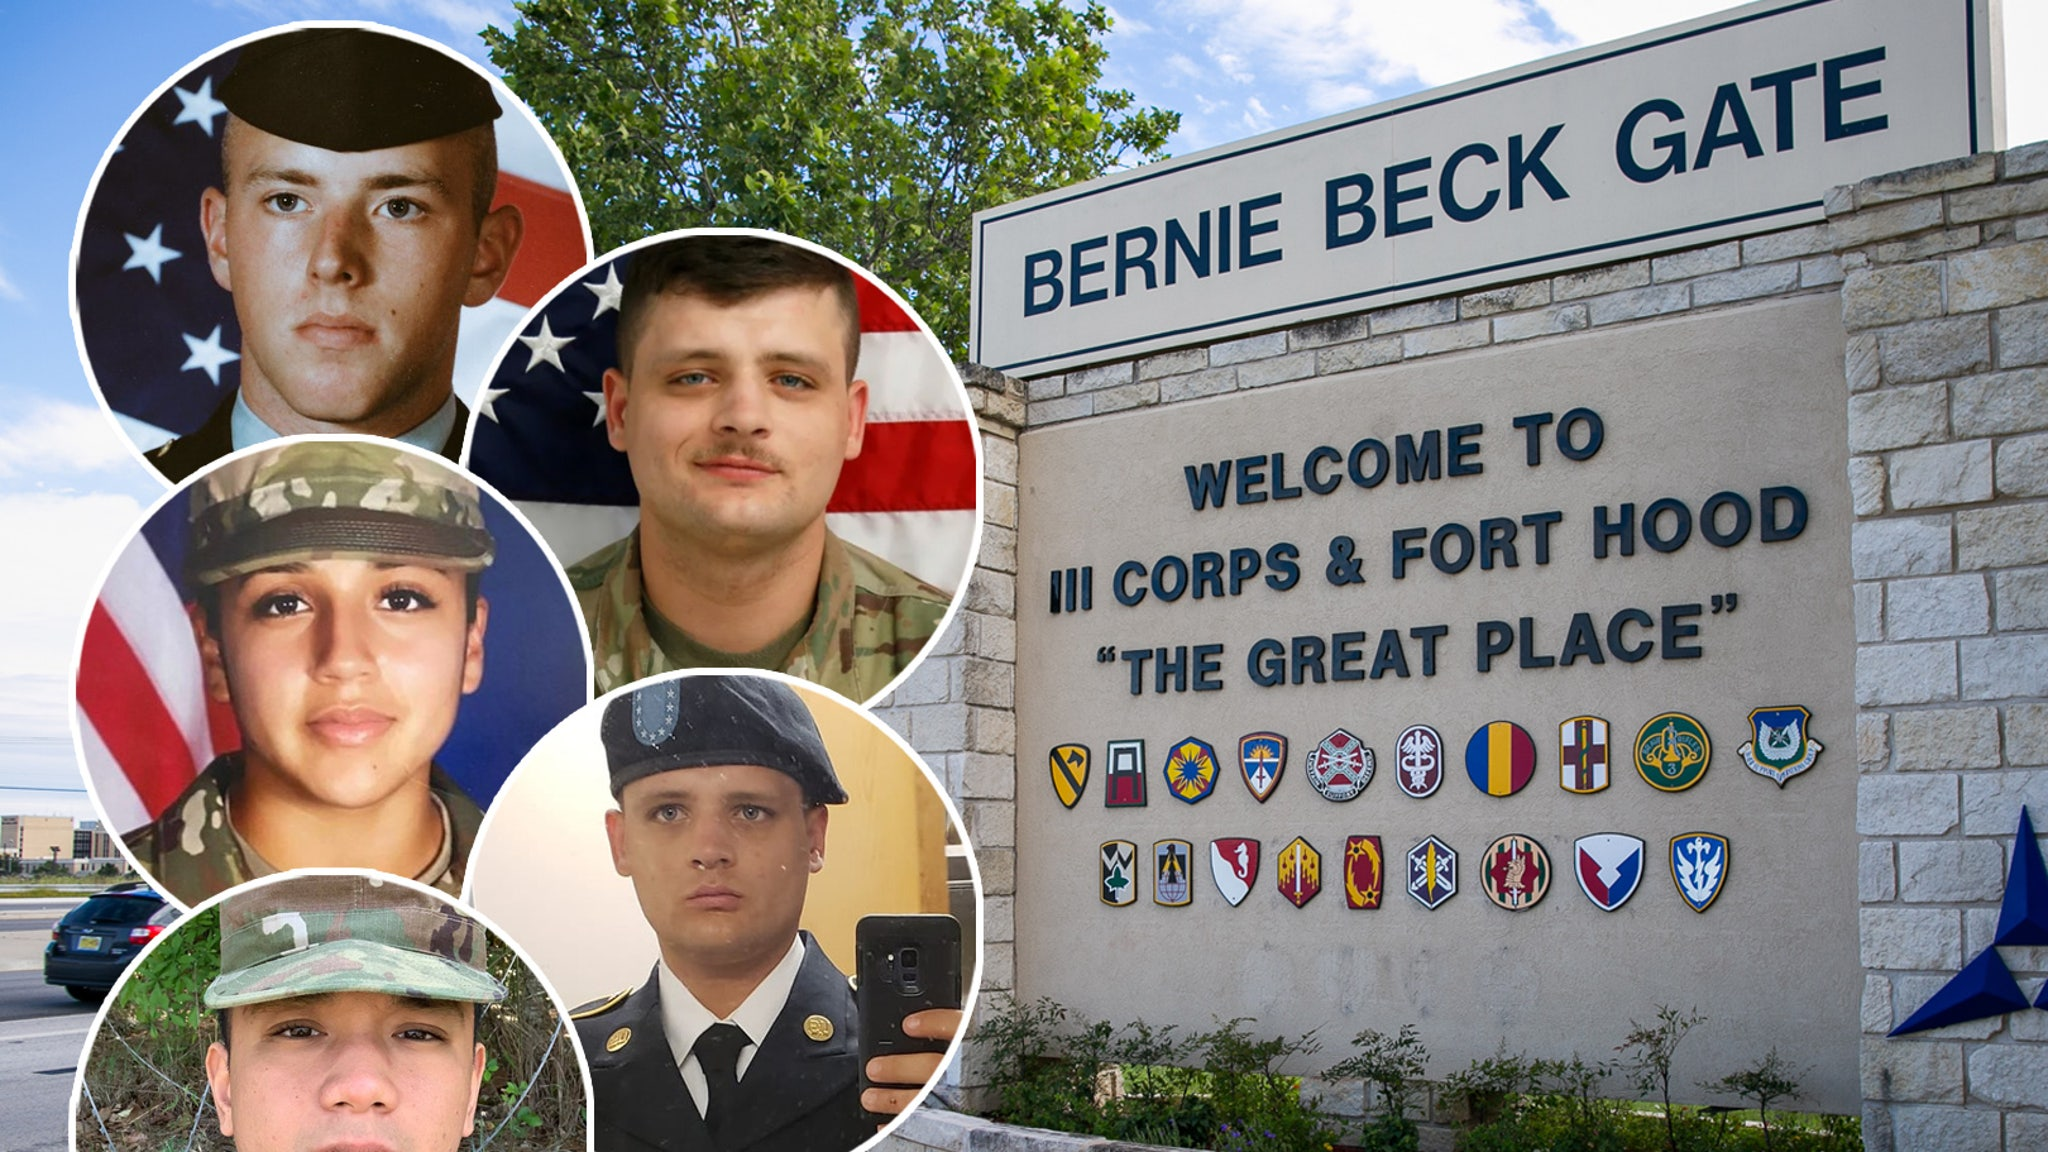 Body of Sixth Soldier in Three Months Discovered at Fort Hood